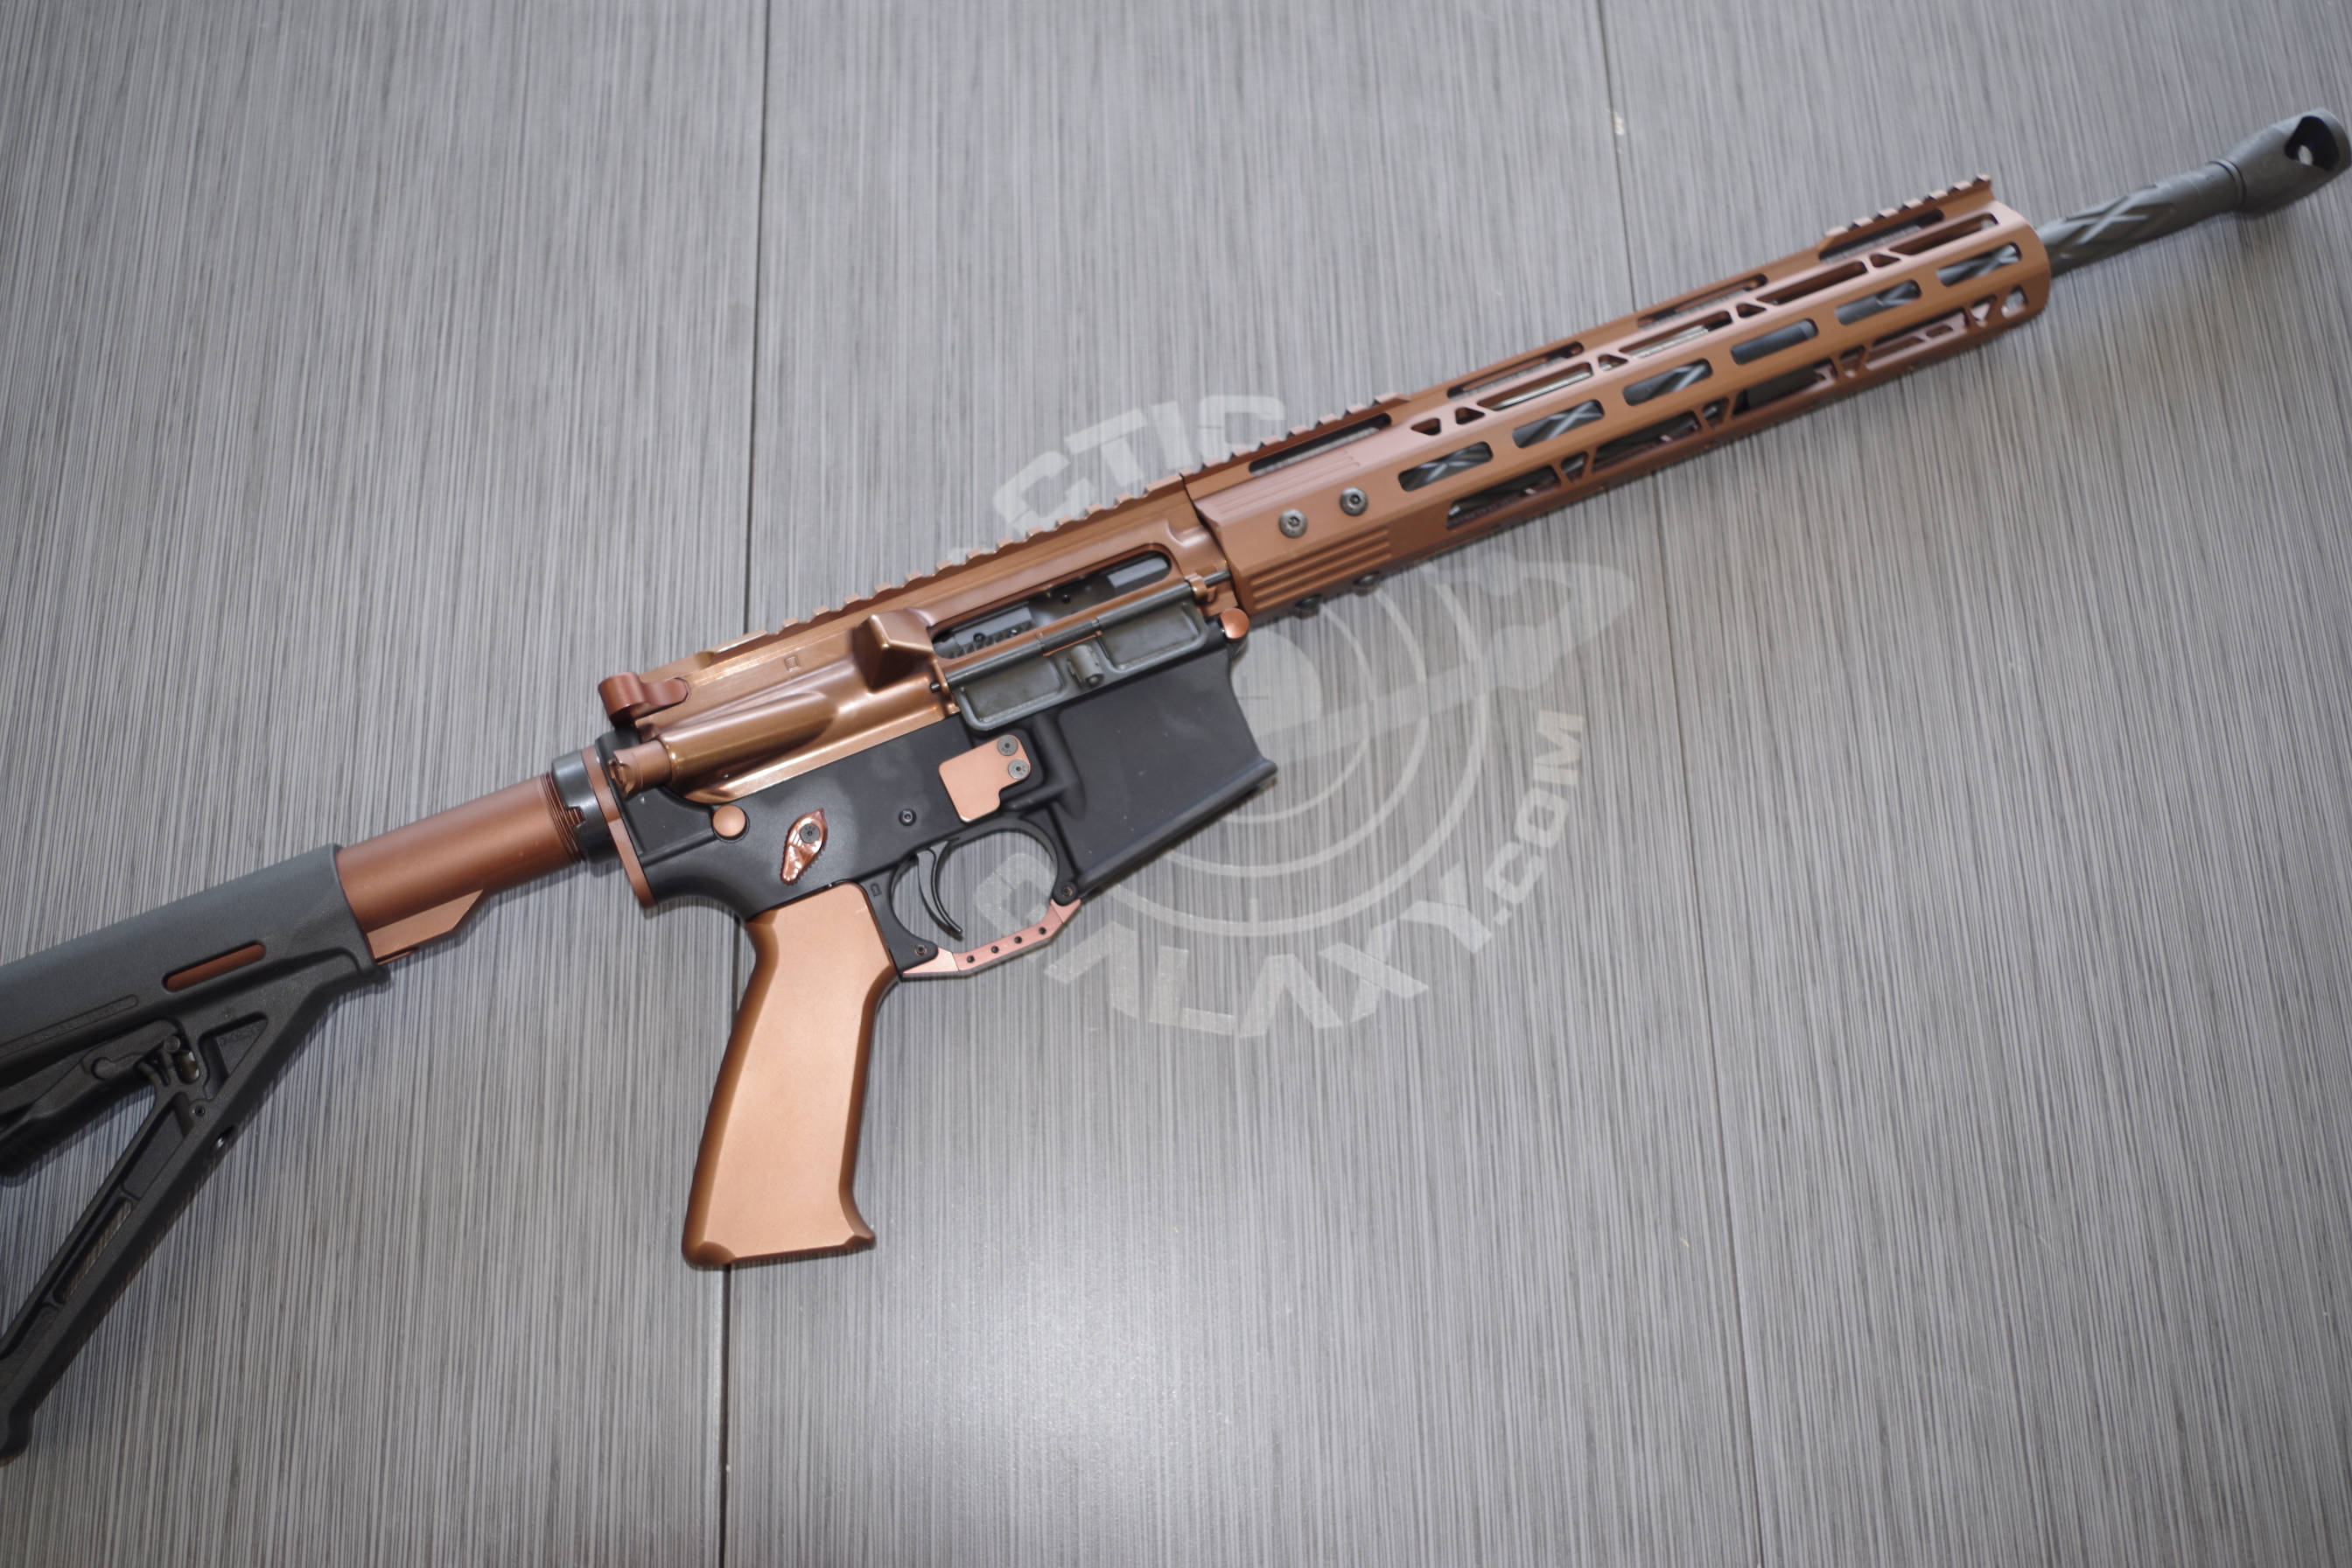 ALL BROWN ANODIZED AR-15 GUN PARTS